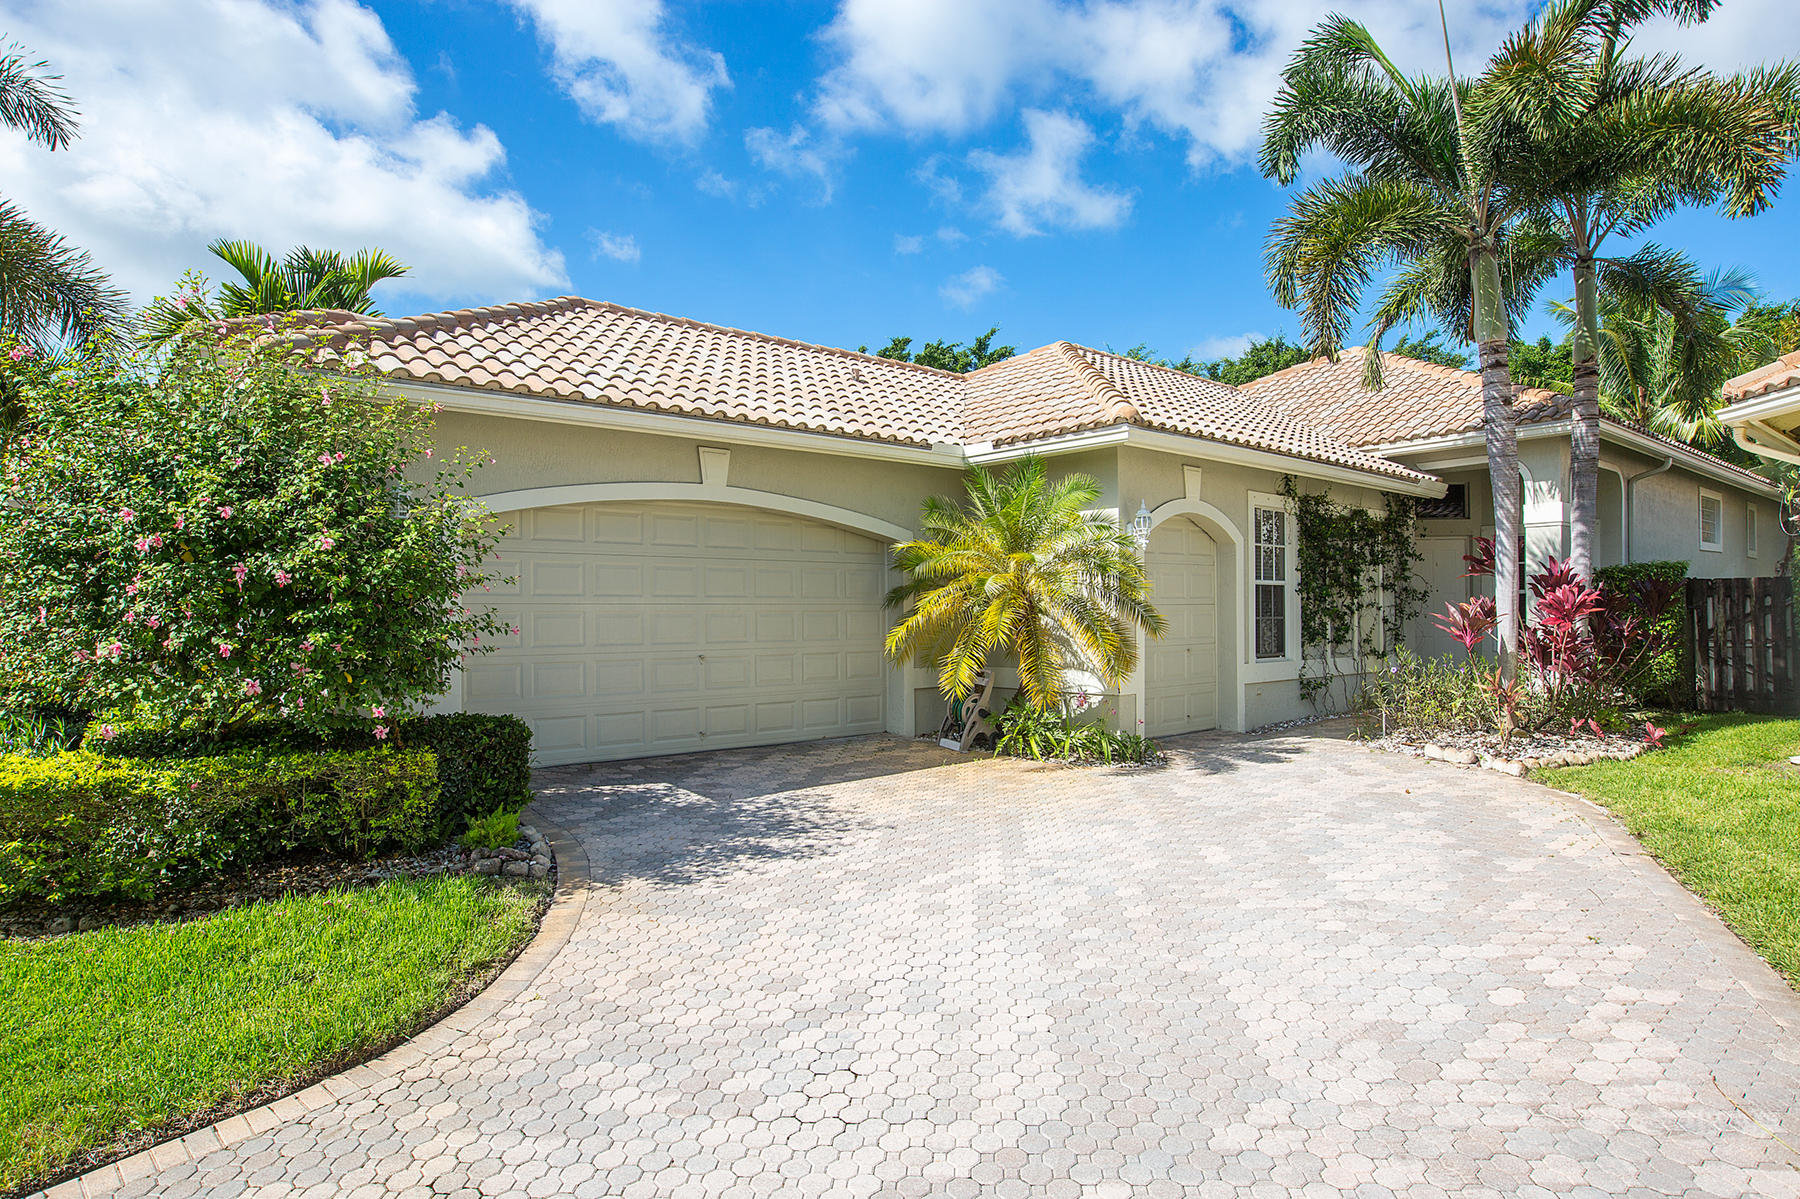 2595 Players Court, Wellington, Florida 33414, 3 Bedrooms Bedrooms, ,3.1 BathroomsBathrooms,Single Family,For Rent,PALM BEACH POLO,Players,1,RX-10558550